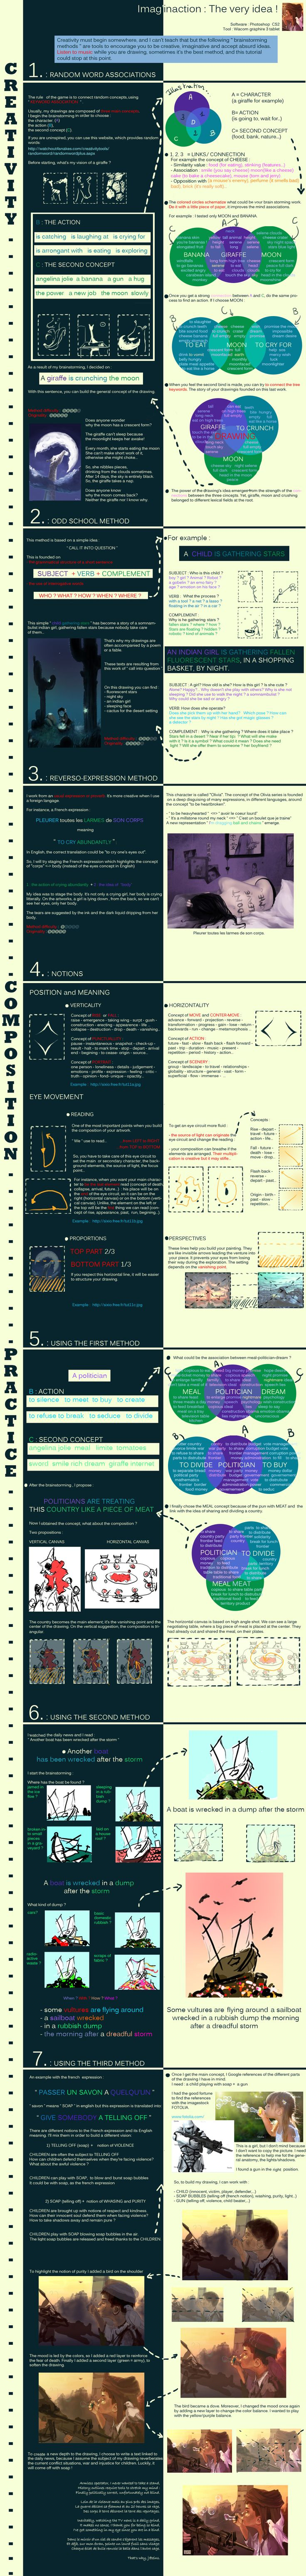 188 best gamedev inspiration scrapbook images on pinterest game tutorial 12 imaginaction by aquasixioiantart on deviantart pooptronica Image collections